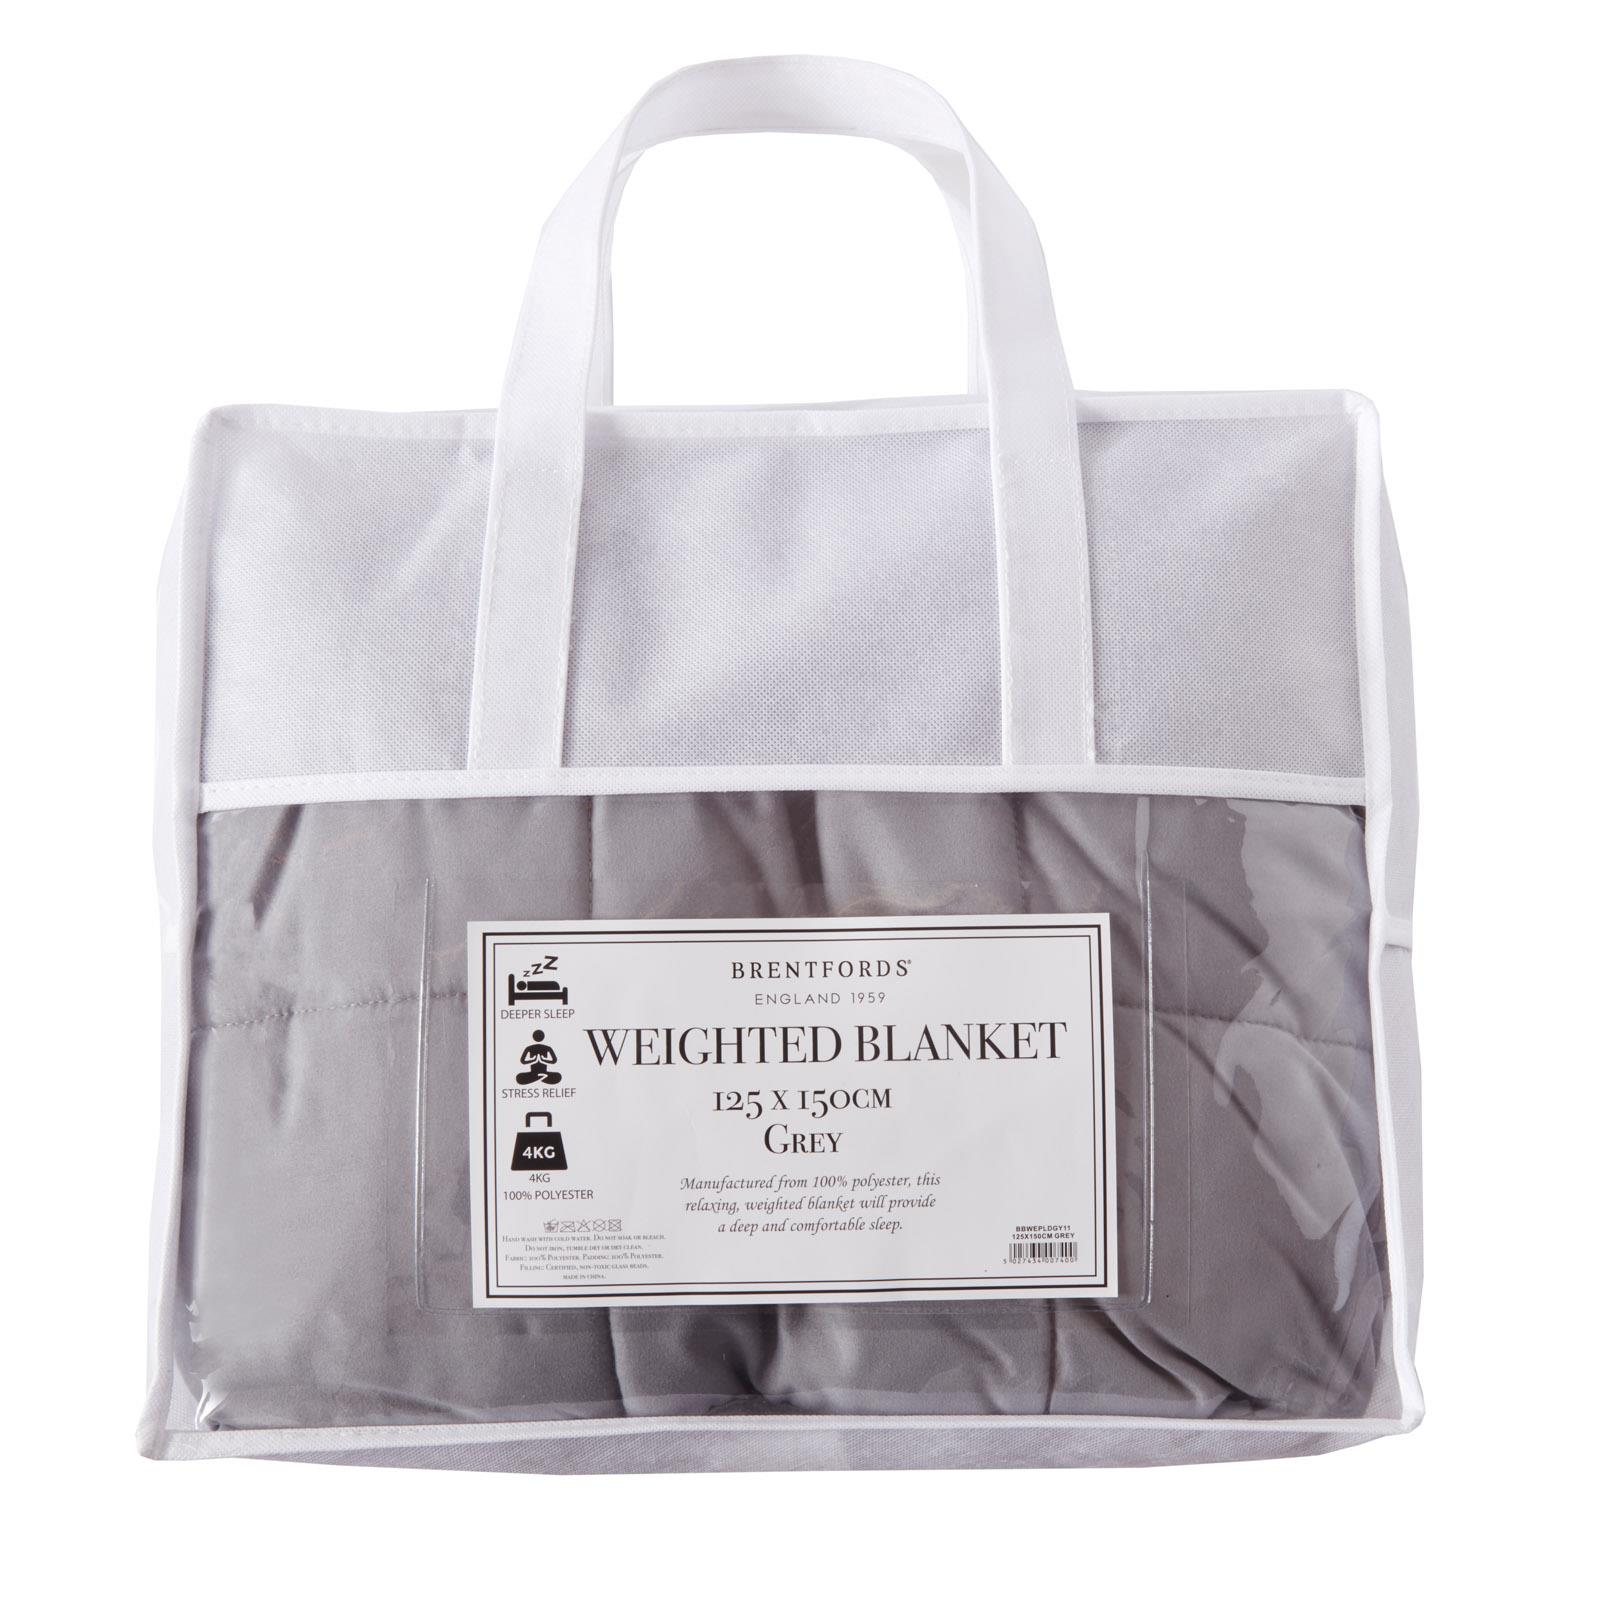 Brentfords-Weighted-Blanket-Sensory-Sleep-Therapy-Anxiety-Kids-Adults-Blush-Grey thumbnail 12